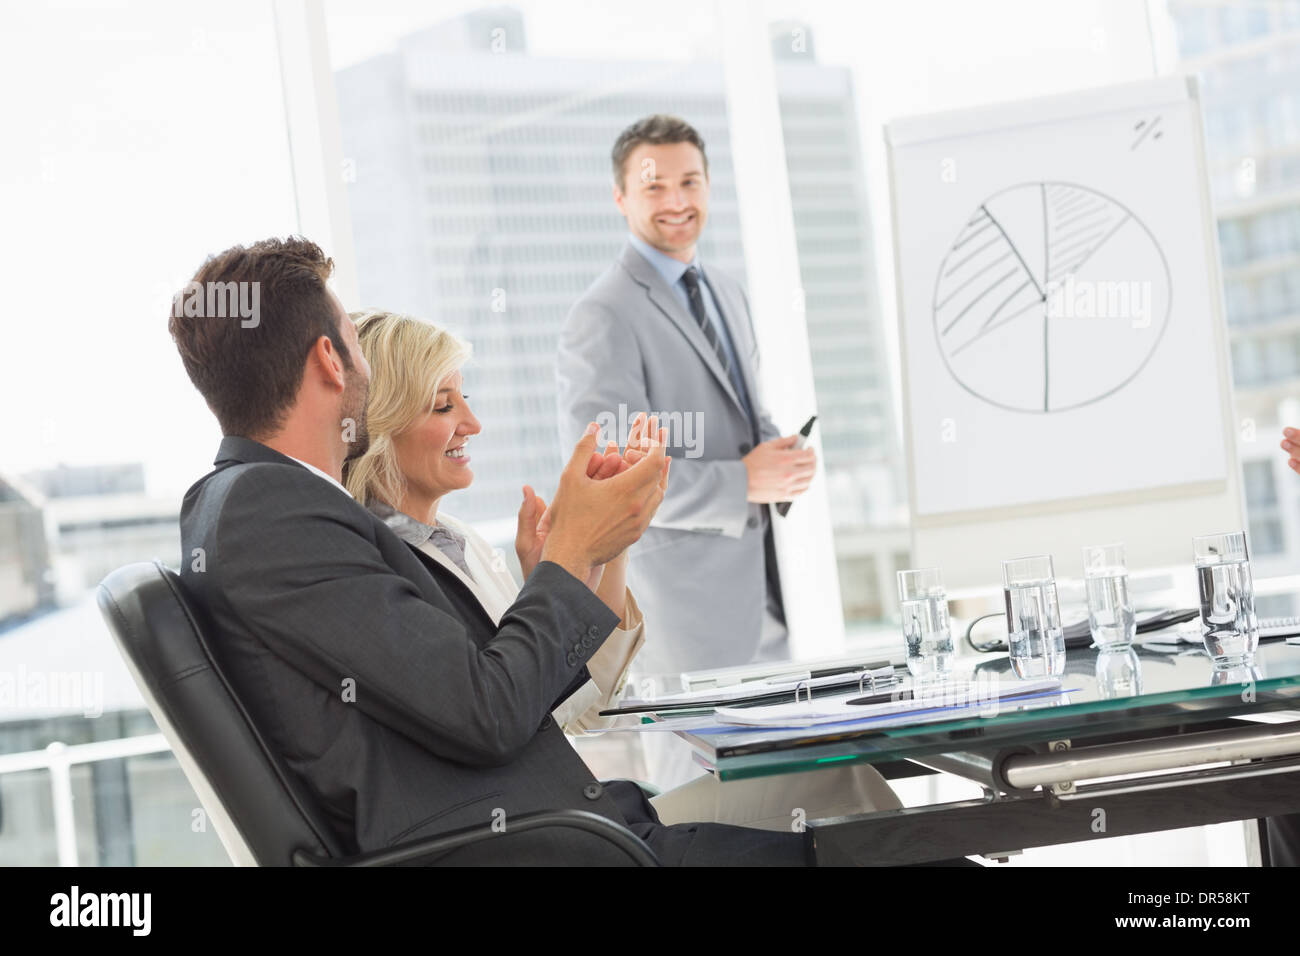 Business people in office at presentation - Stock Image